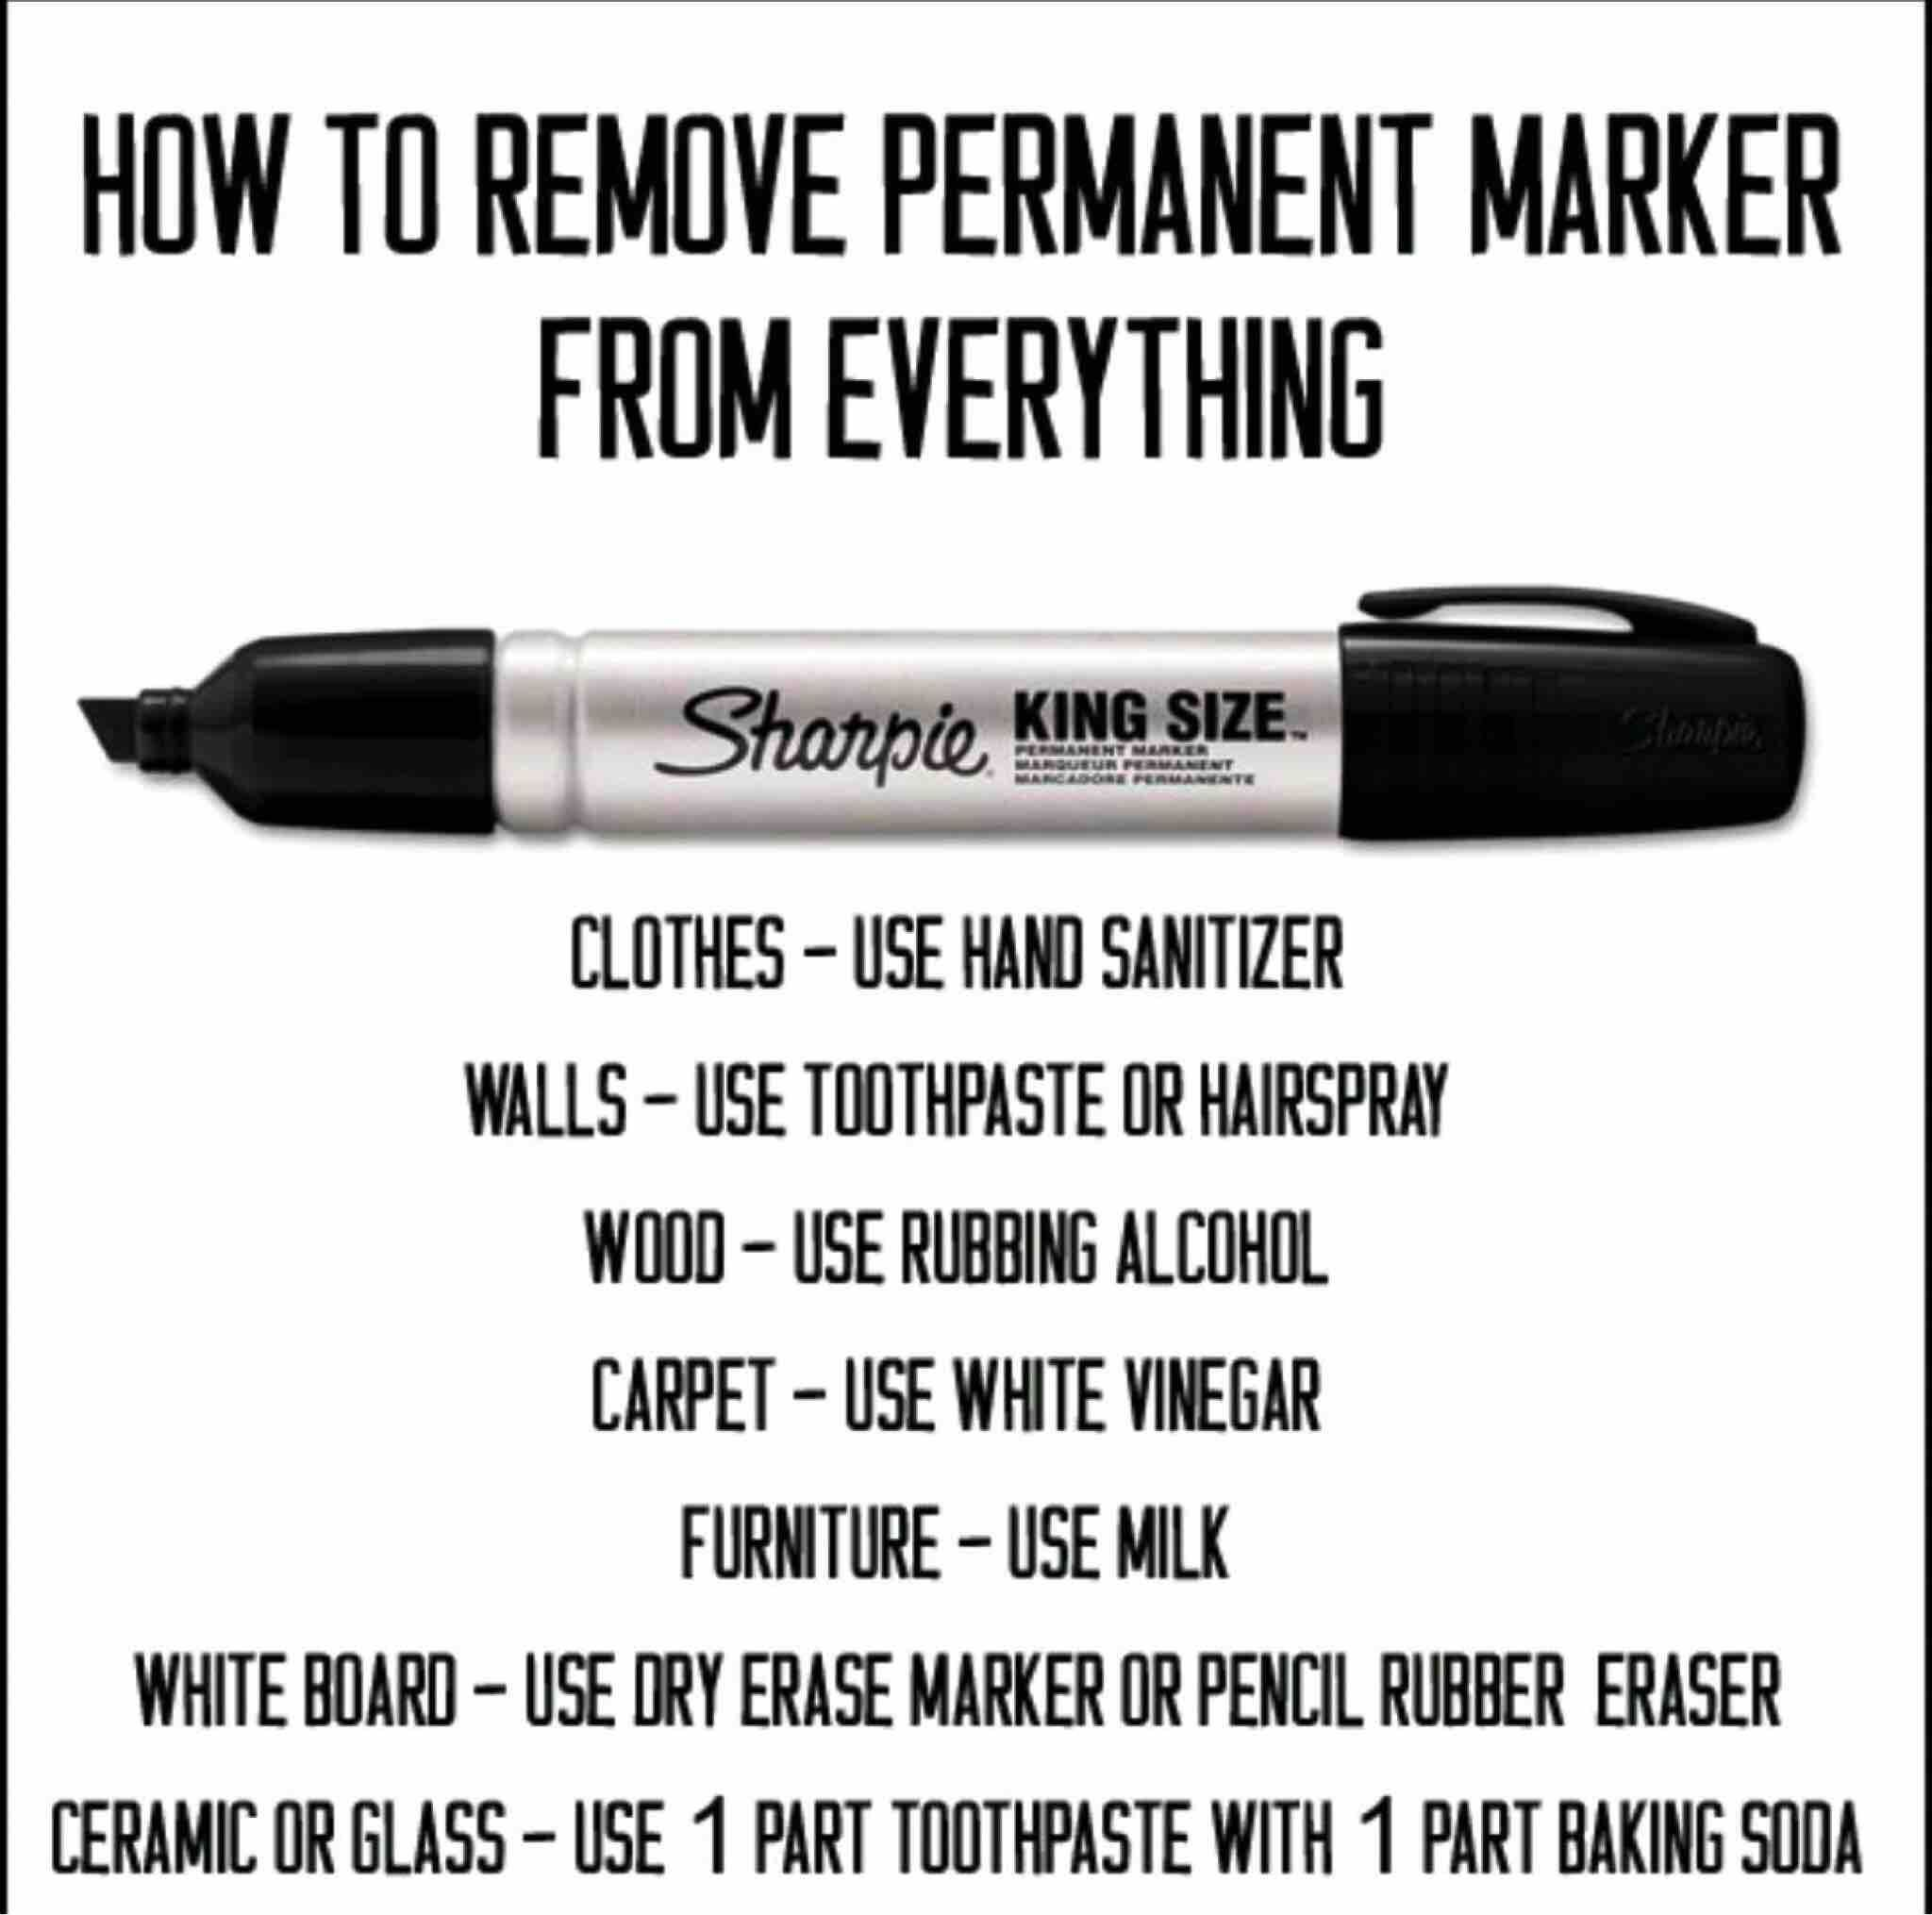 51 Insane Everyday Life Hacks That Will Make Your Life Effortless